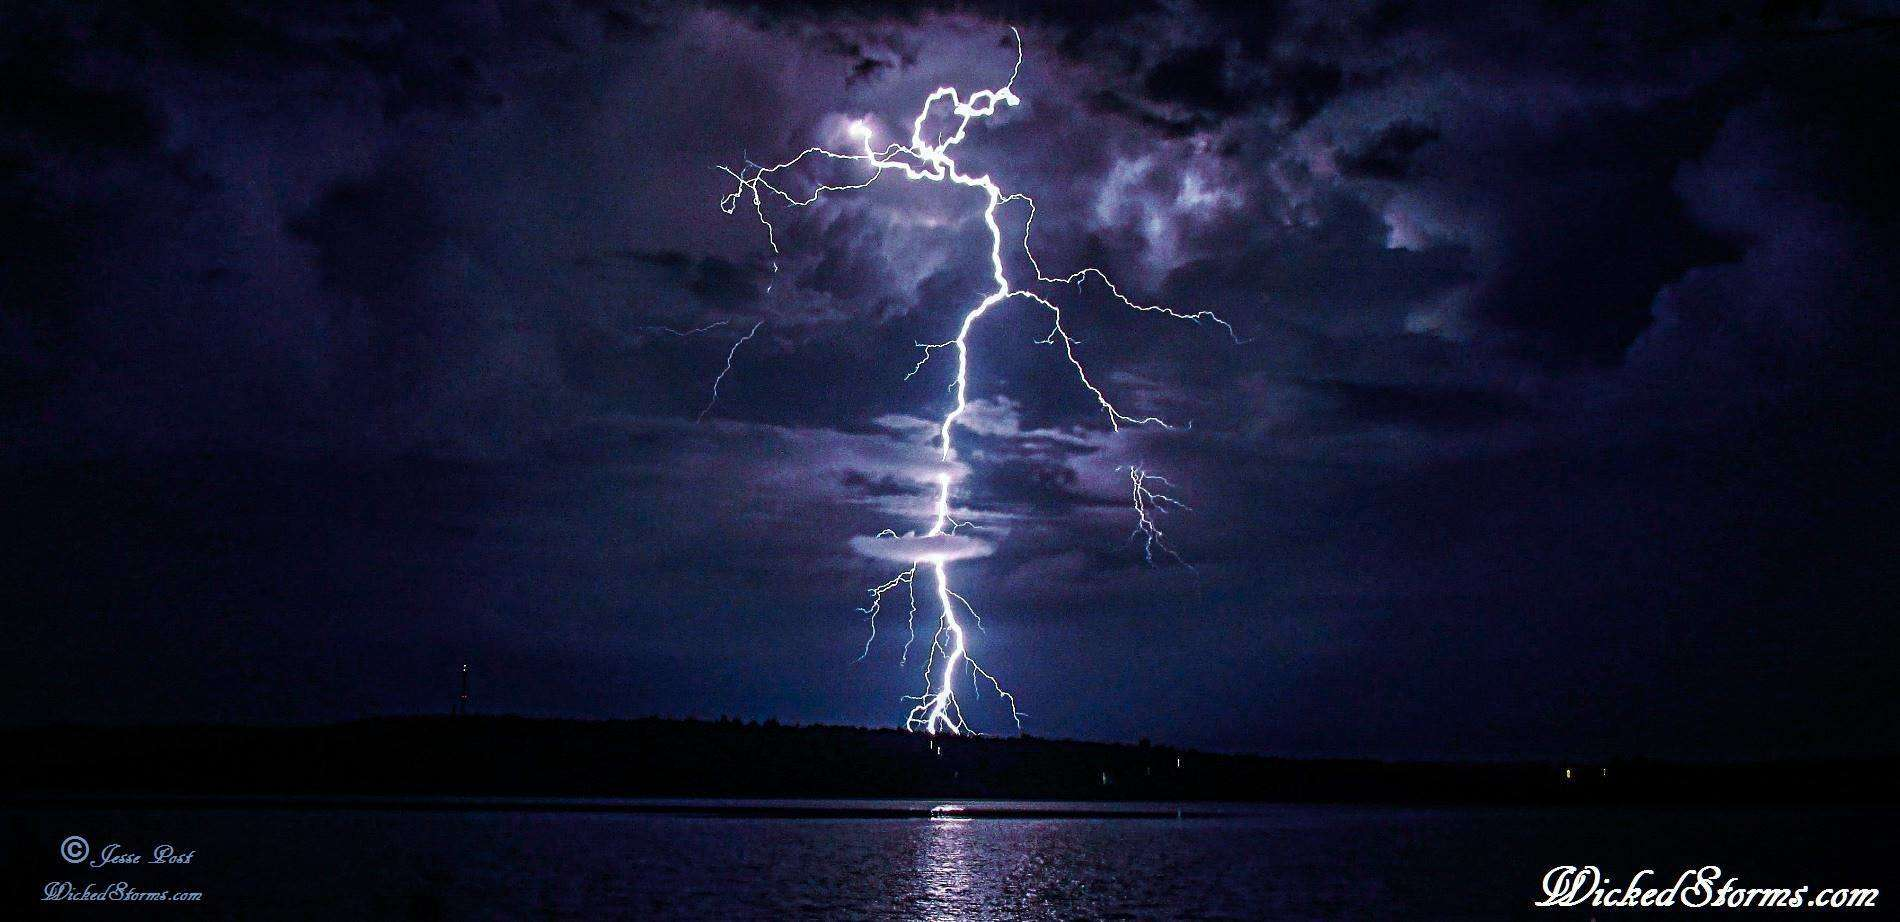 Many many years I've chased lightning...only tried to capture them with a camera for 2 or 3 years now tho. This is one of my favorites ....Amazing positive striker at the Lake Tenkiller reservoir near Tahlequah, OKL from 7-22-15